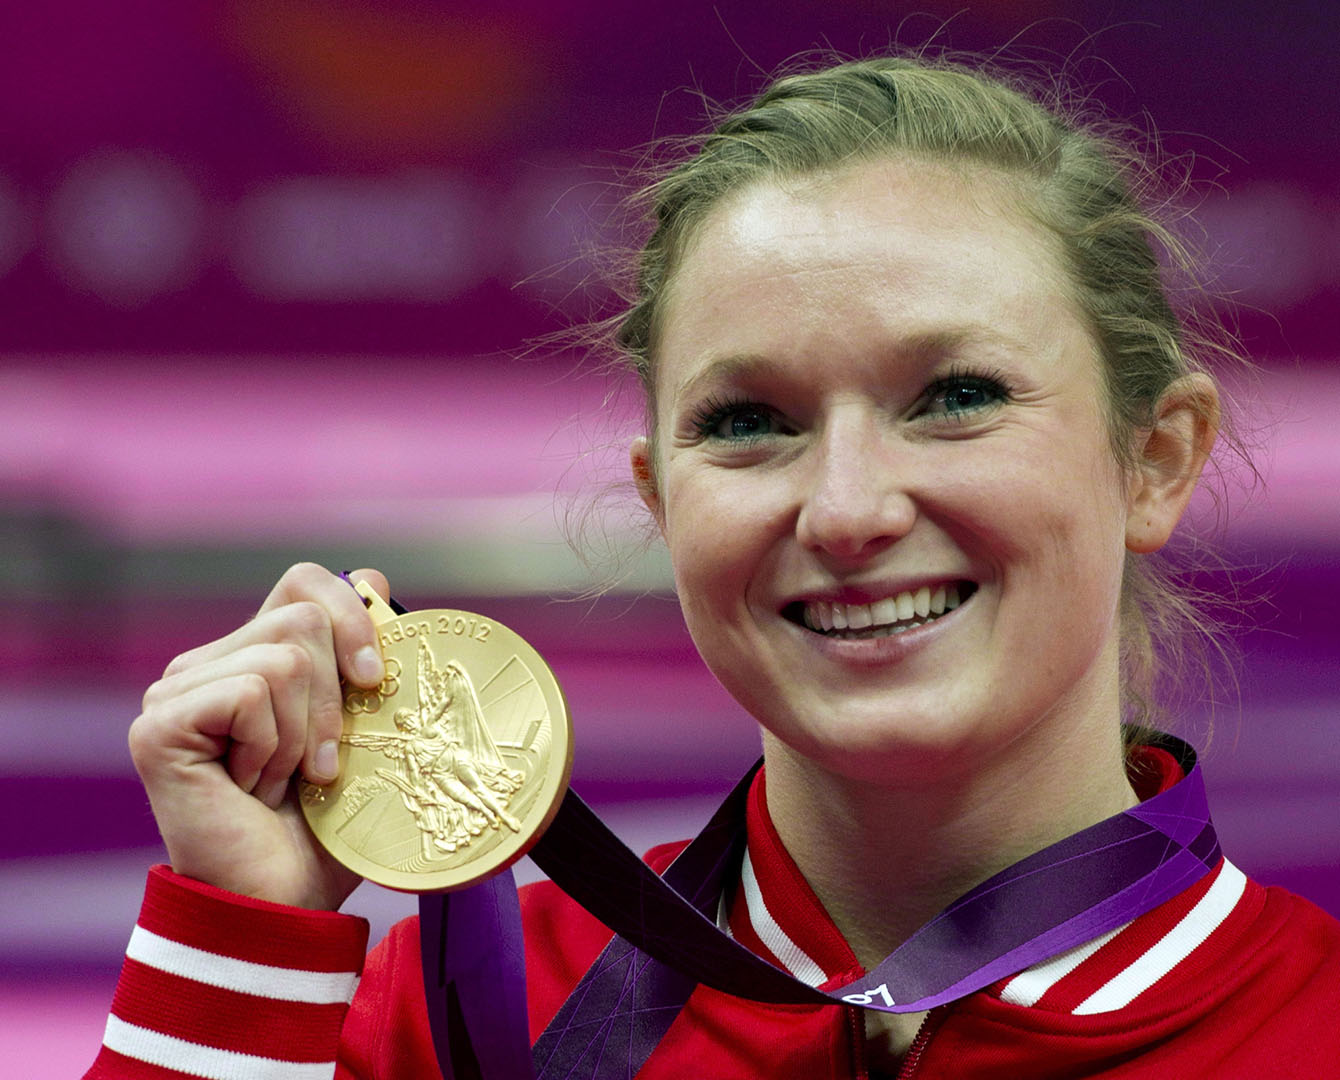 Canada's Rosannagh MacLennan, from King City, Ont., holds up her gold medal for the women's trampoline at the 2012 Olympic Games in London on August 4, 2012. Over the next few days, Canada's Olympic medallists will likely return home to a hero's welcome. But once the dust settles, it's unlikely they'll be cashing in on their Summer Games success. THE CANADIAN PRESS/Ryan Remiorz